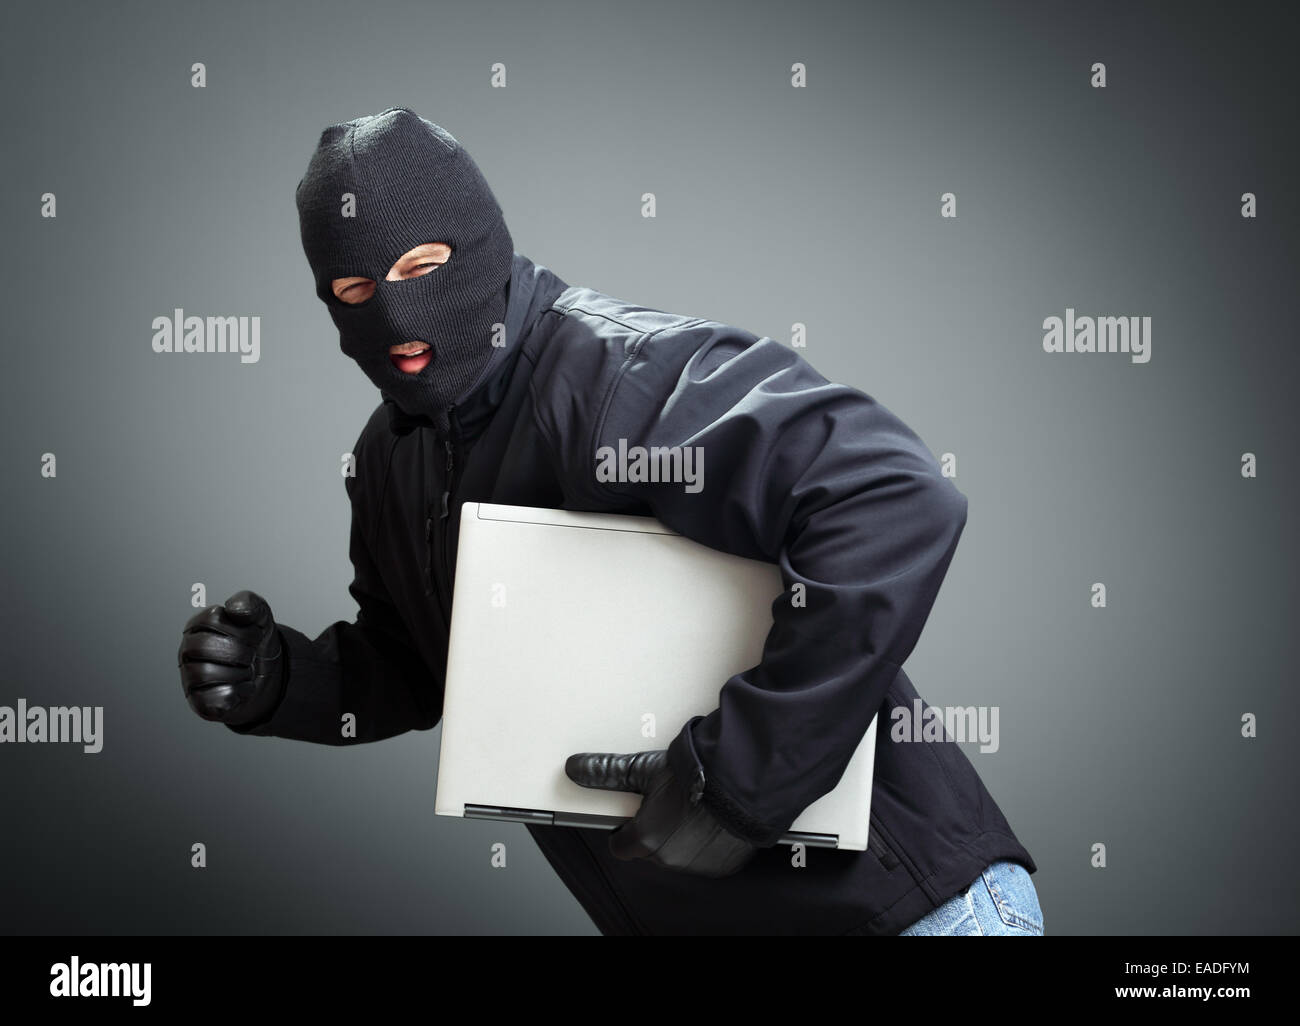 Thief stealing laptop computer - Stock Image